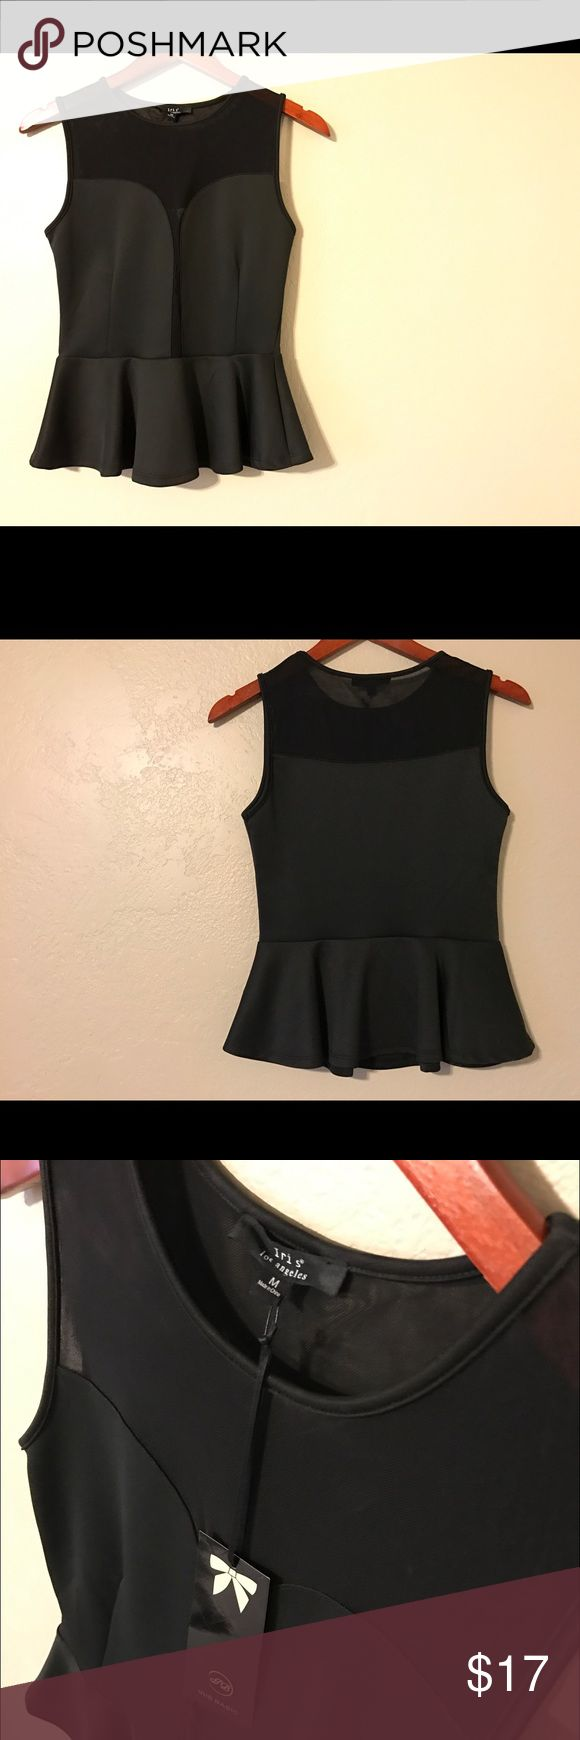 NWT Iris Basic Black Peplum Top - Sz: M NWT Iris Basic Black Peplum Top - Sz: M - sheer, tight mesh fabric above chest and down through the middle to the horizontal seam - classy night look - can be worn with, leggings, skirts or jeans - awesome wardrobe piece! Iris Basic Tops